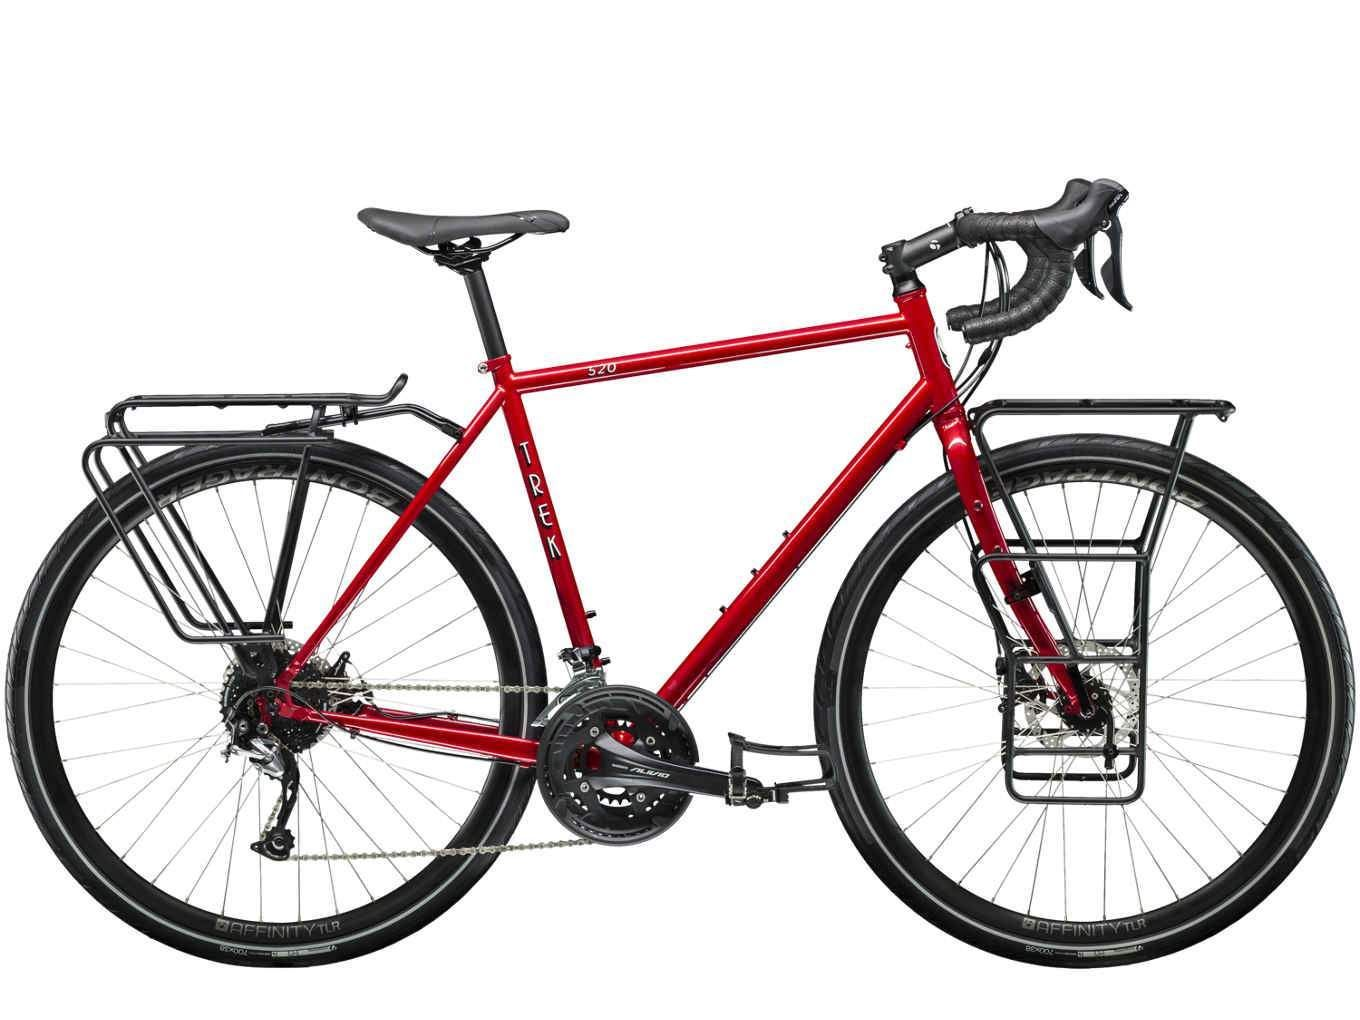 2019 Trek 520 Touring Bike Trek Bikes Bike Rider